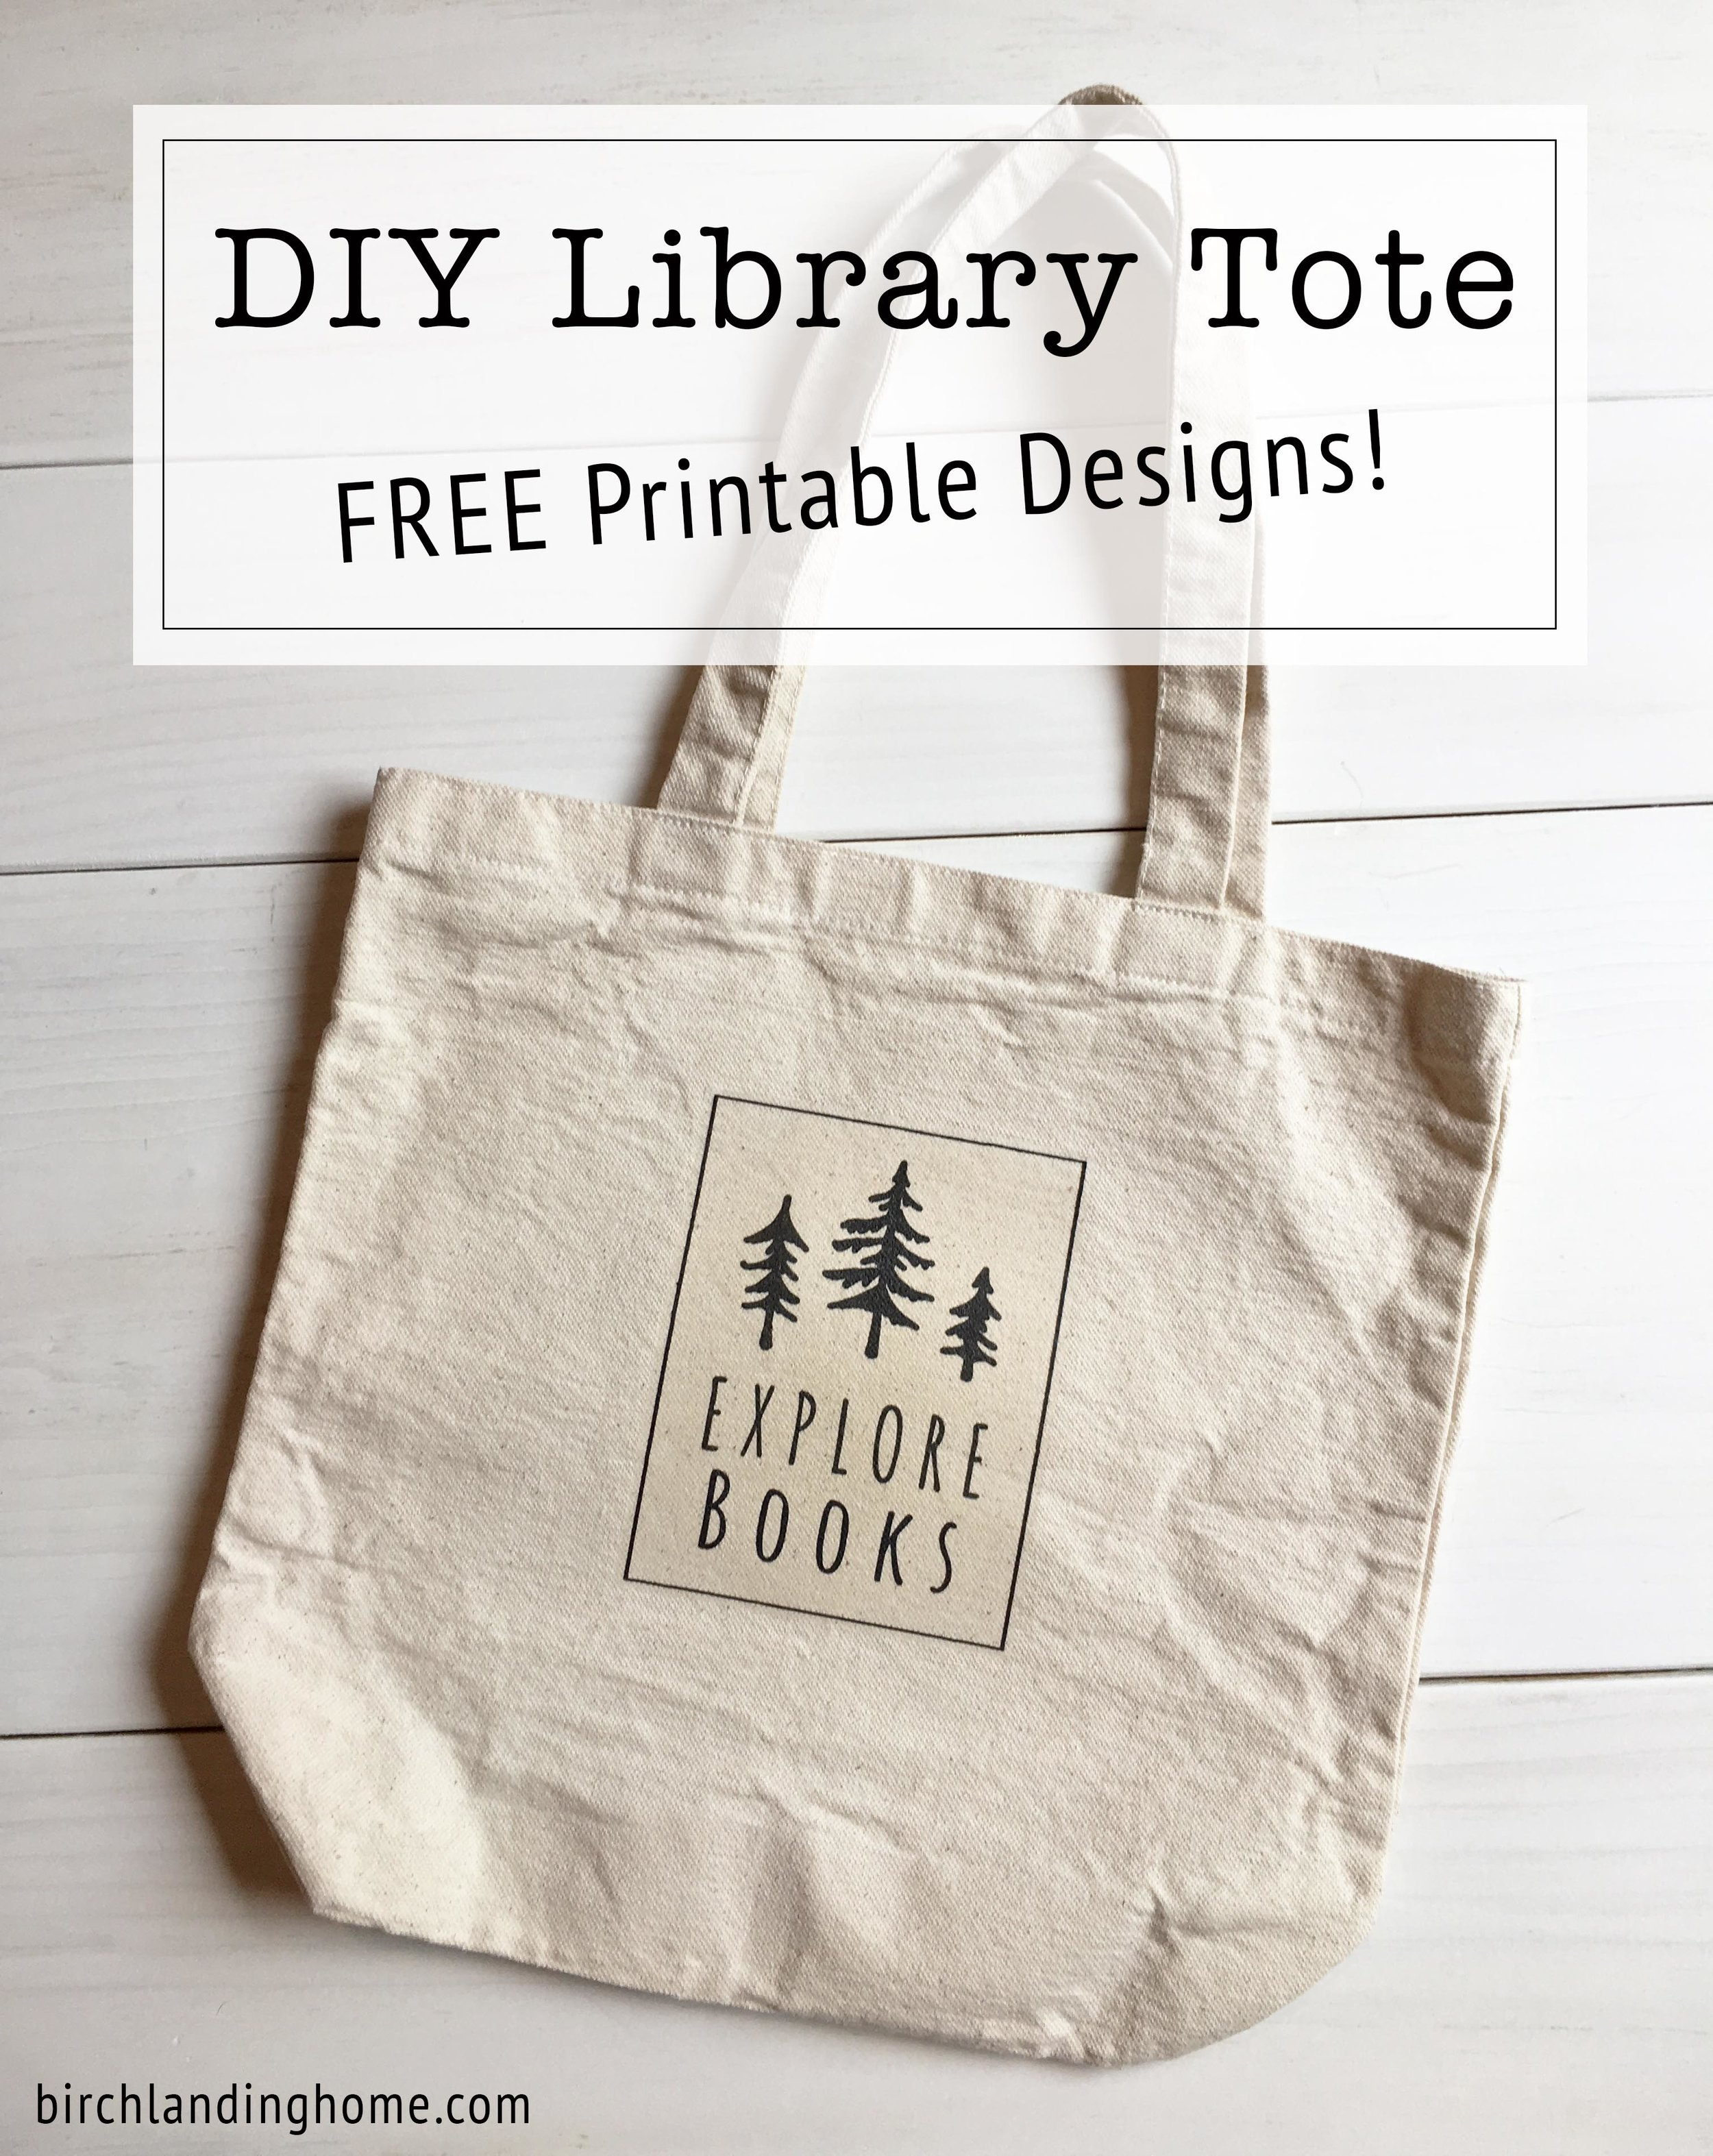 DIY Library Tote {FREE Printable Designs for Iron-On Transfer!}